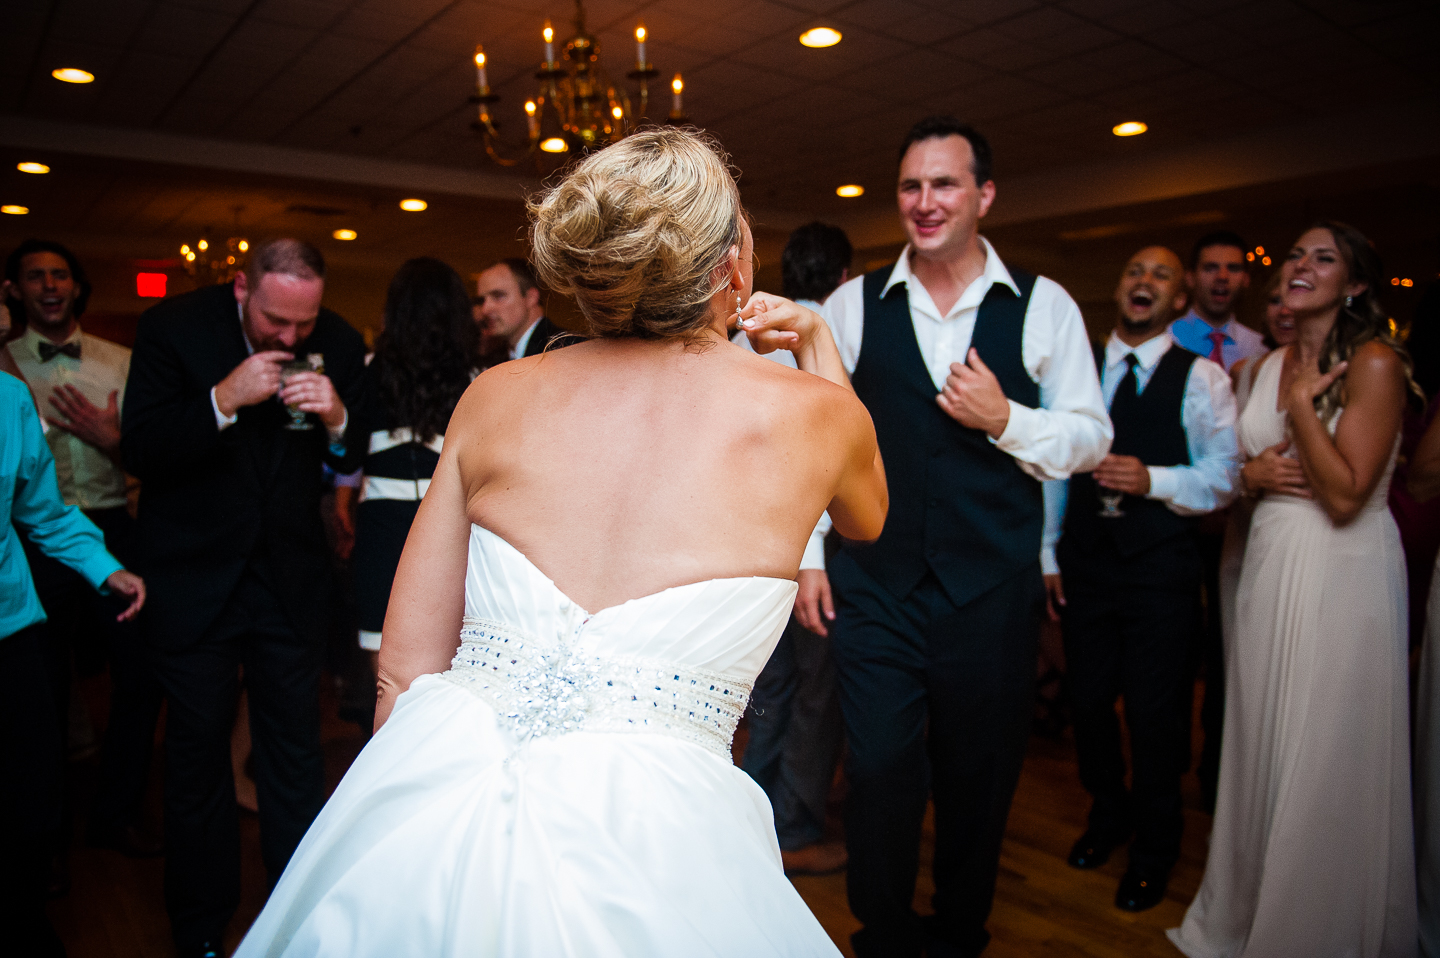 a bride and groom at the center of the dance floor